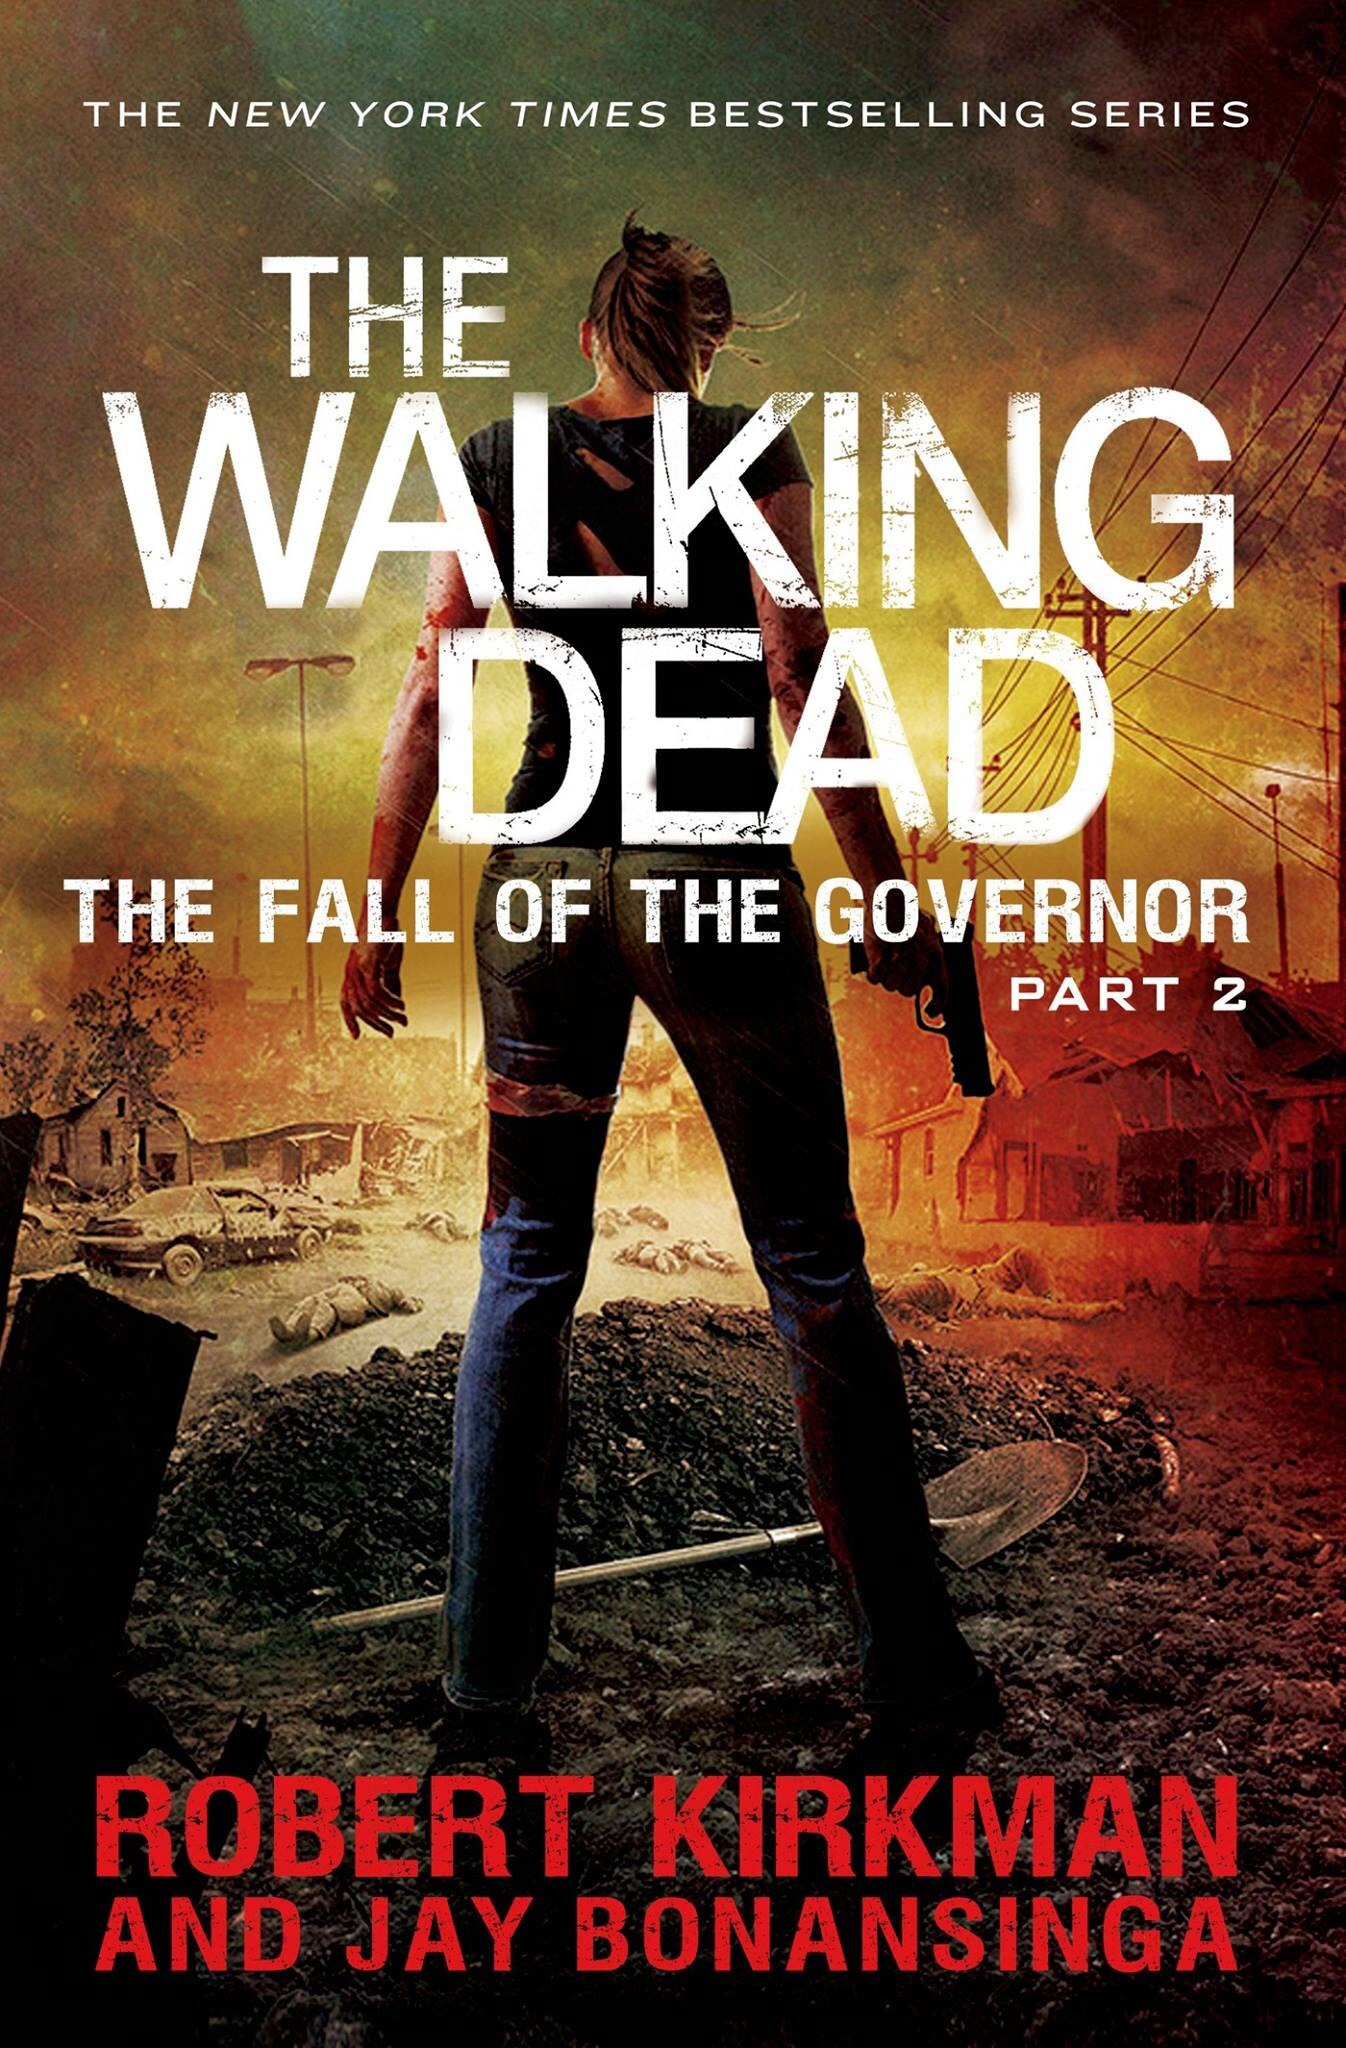 Parts 1 and 2 The Fall of the Governor The Walking Dead